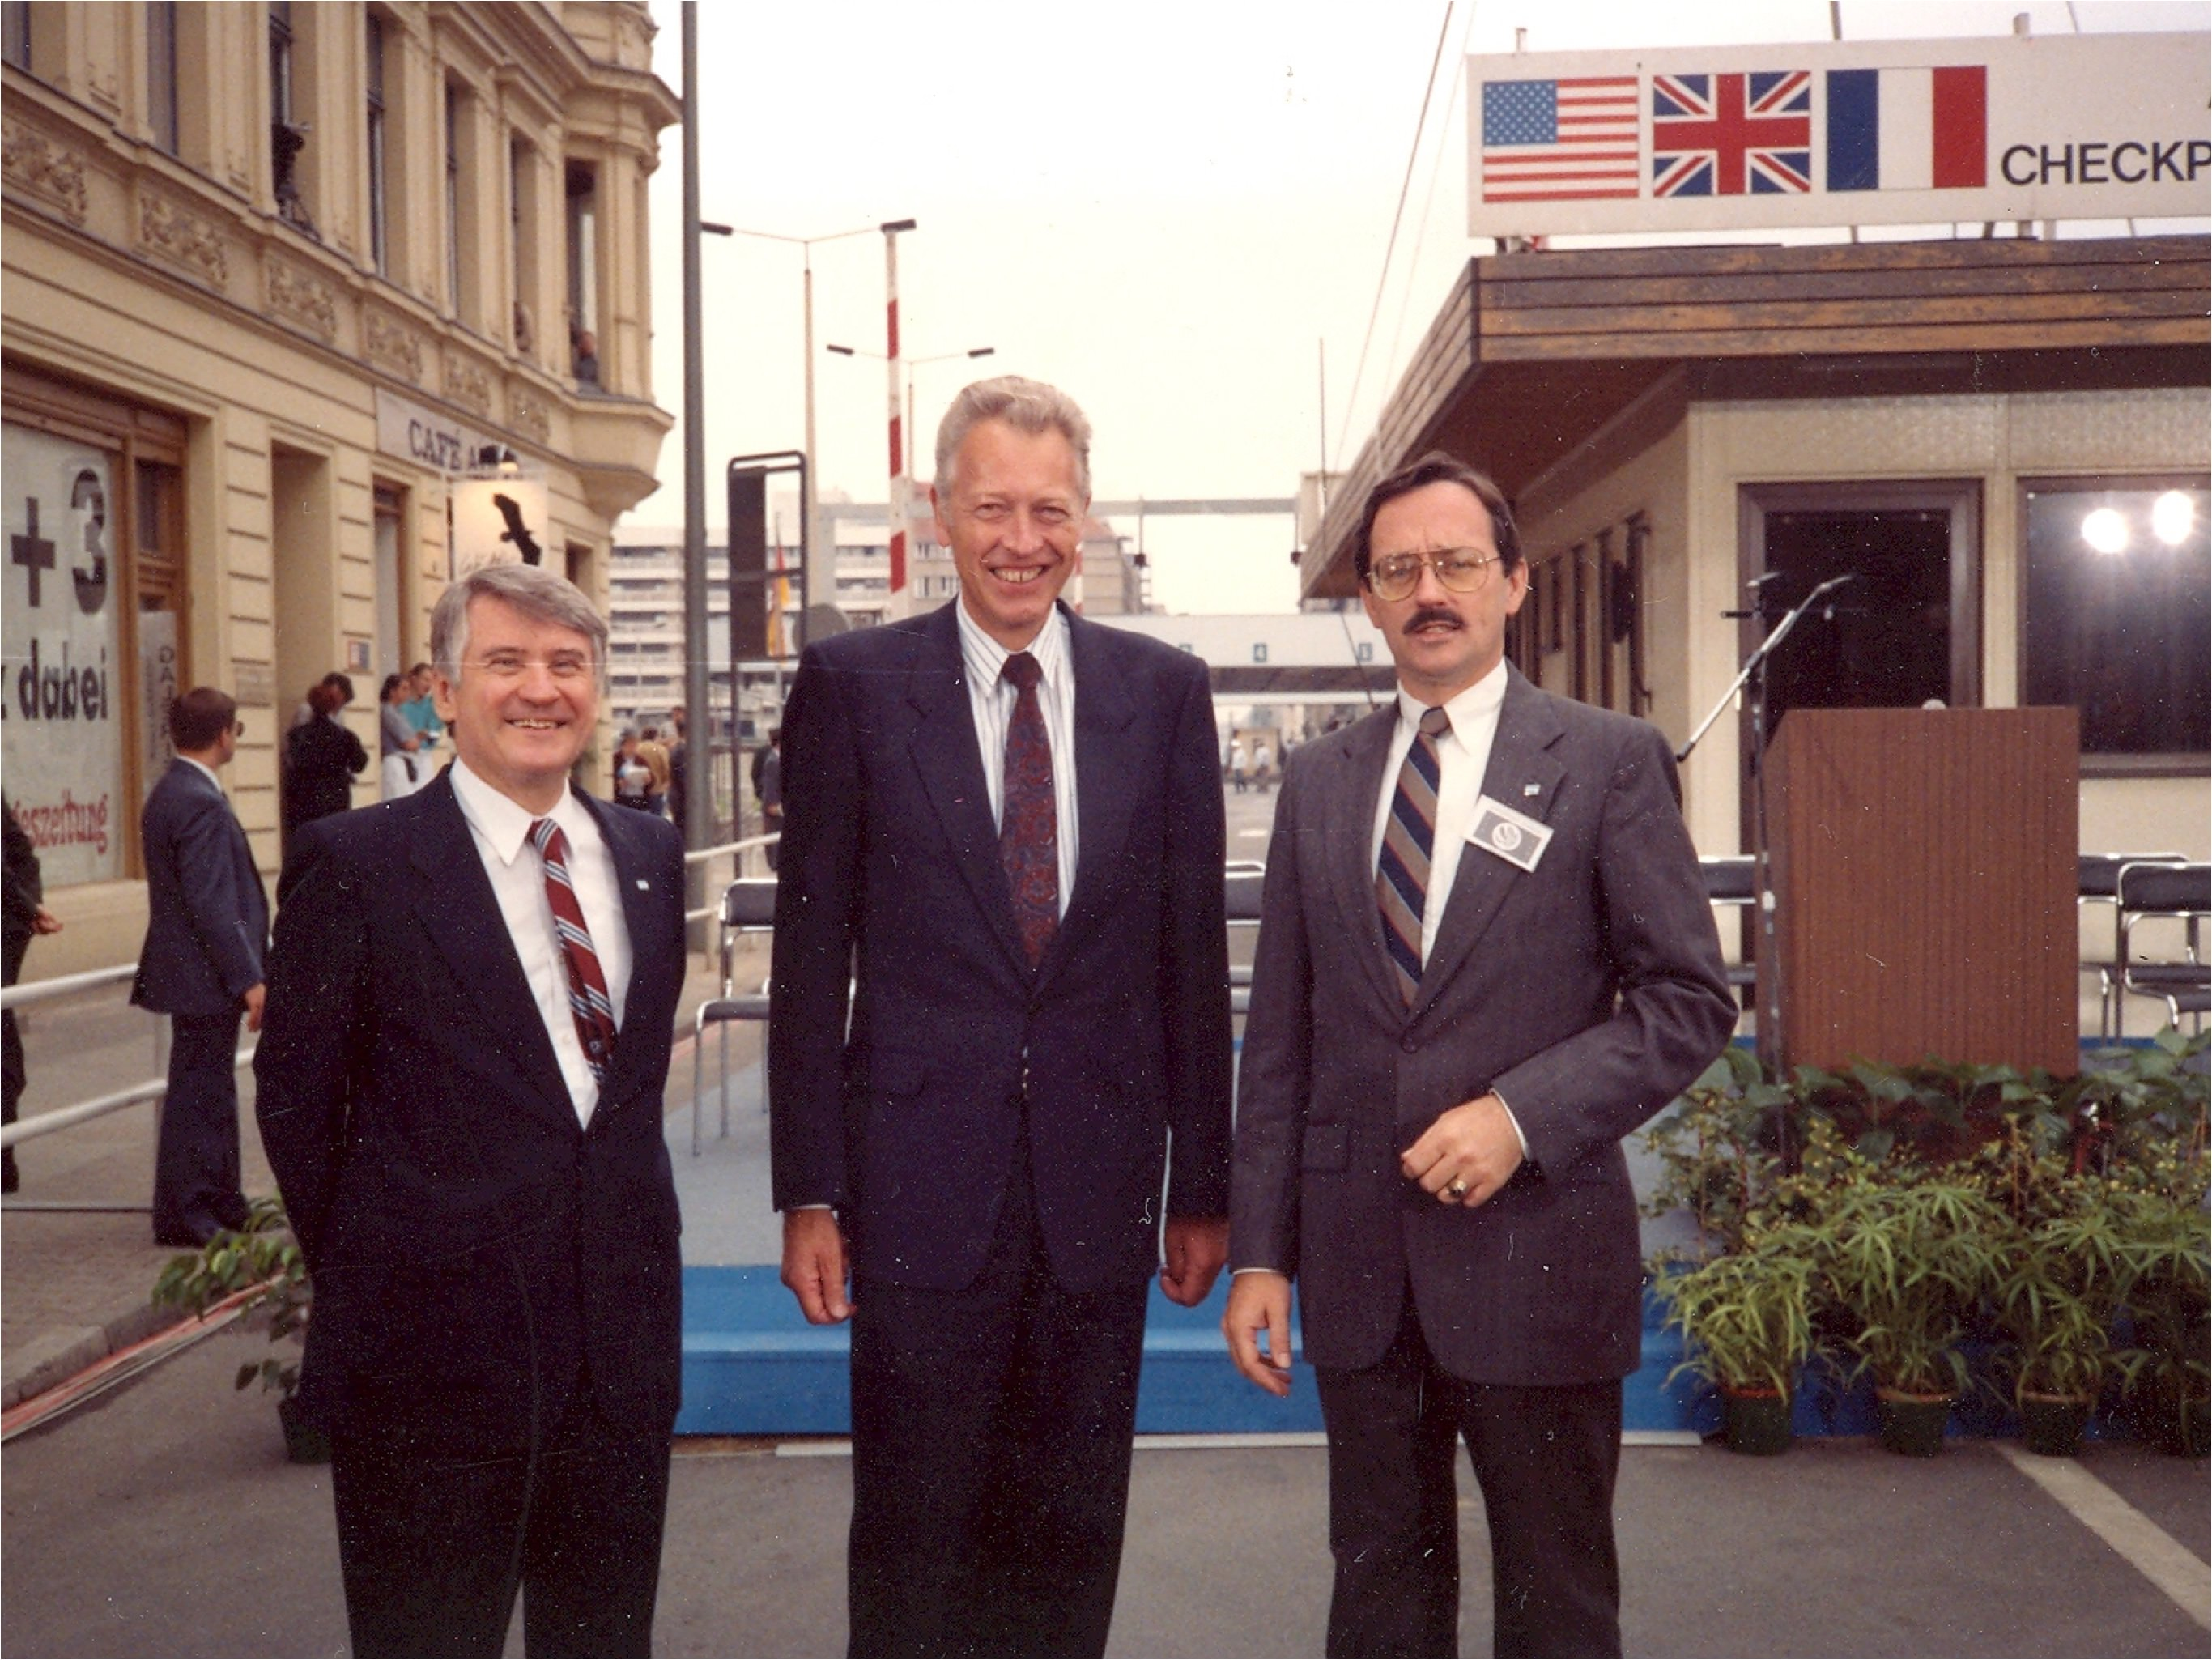 U.S. Minister to West Berlin Harry Gilmore (left); U.S. Minister to East Berlin, J.D. Bindenagel (right), and West German Political Director Dieter Kastrup (center) attending the Decommissioning of Checkpoint Charlie, Berlin.